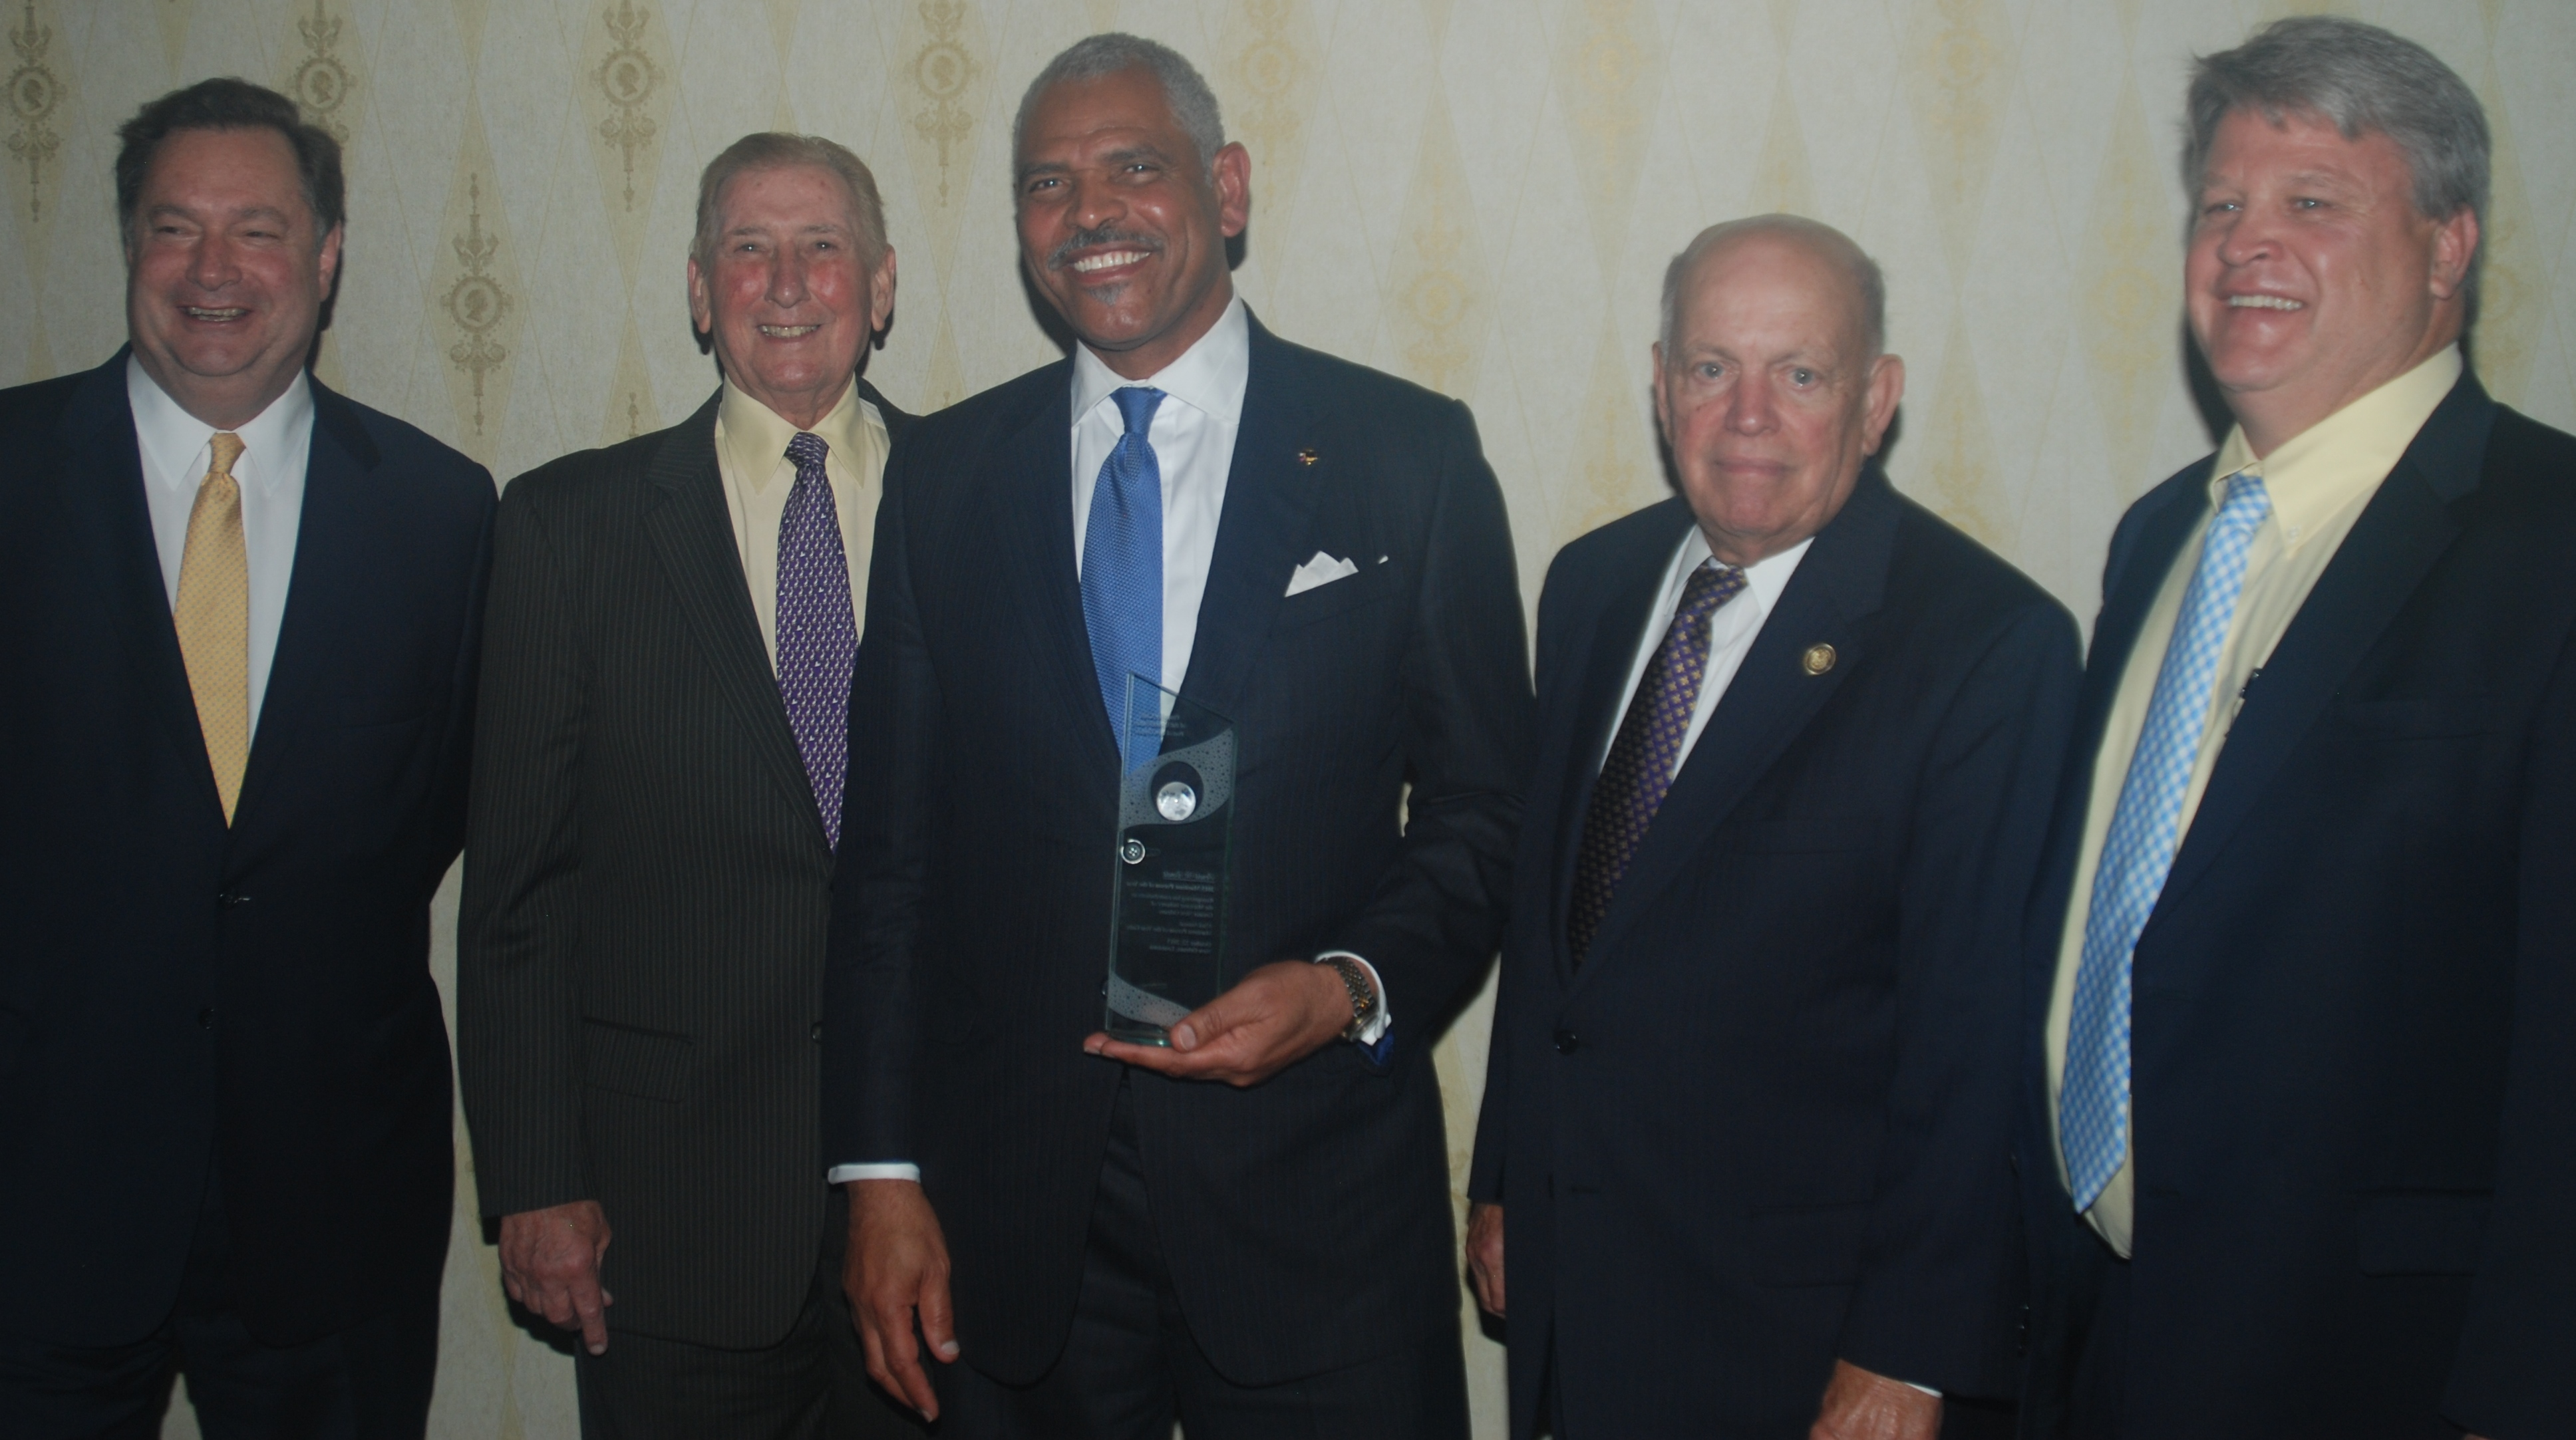 Carnival Corporation CEO Arnold Donald Named Maritime Person of the Year by the Propeller Club of the Port of New Orleans